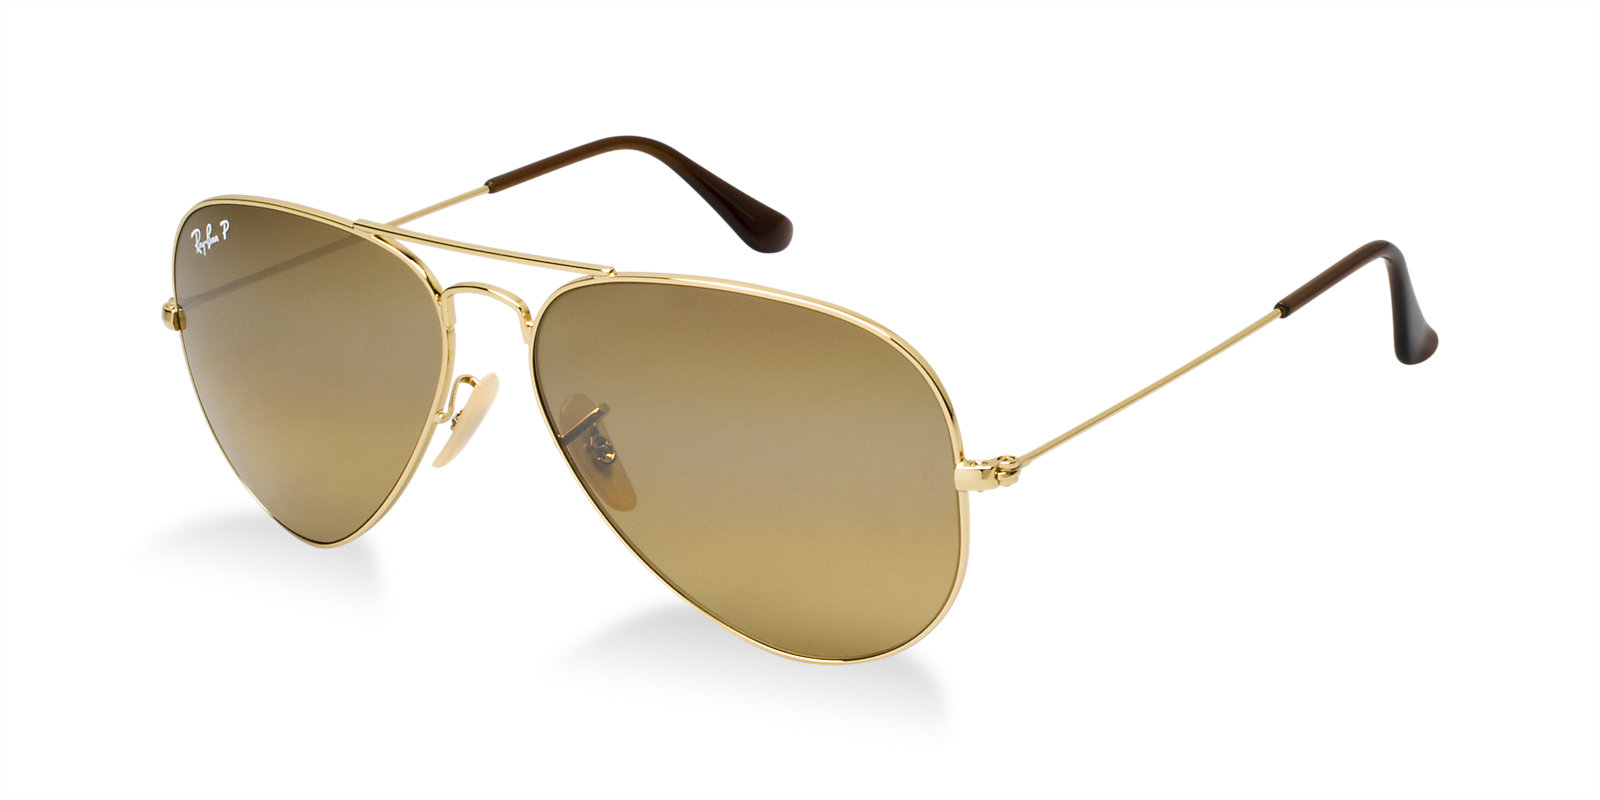 ray ban rb3025 001 57 gold polarized aviator sunglasses. Black Bedroom Furniture Sets. Home Design Ideas